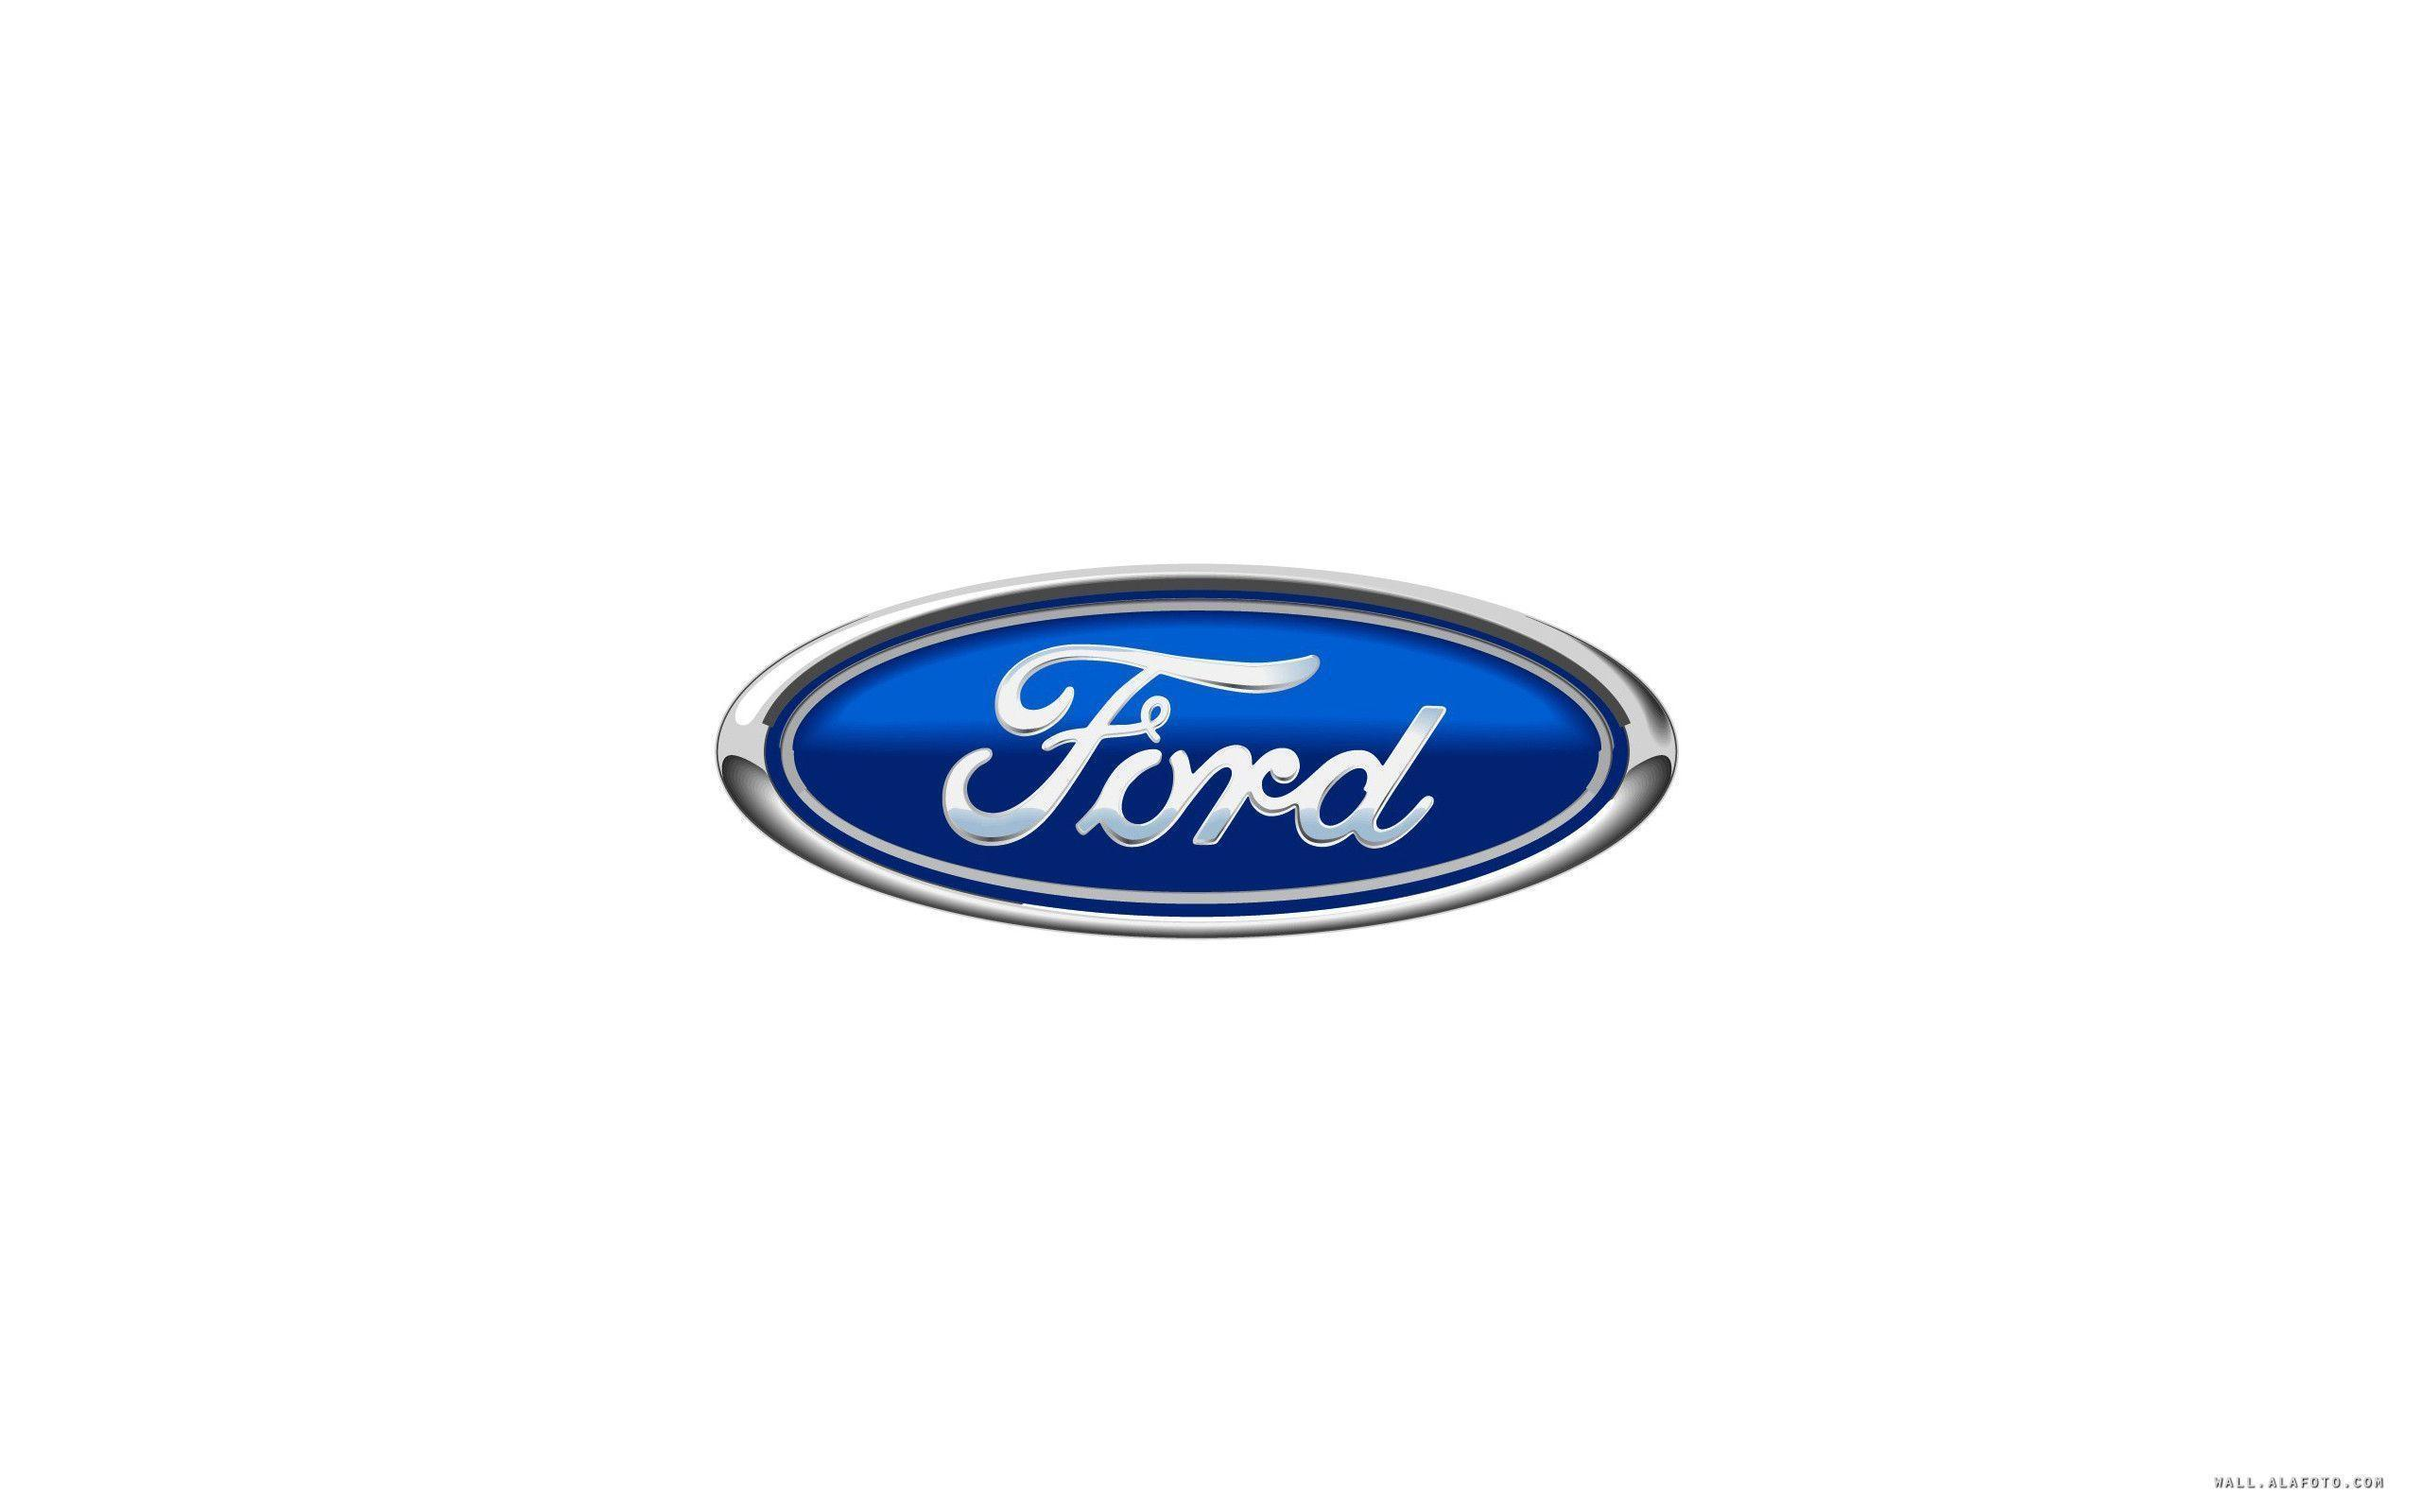 Ford Logo Wallpapers 2560x1600